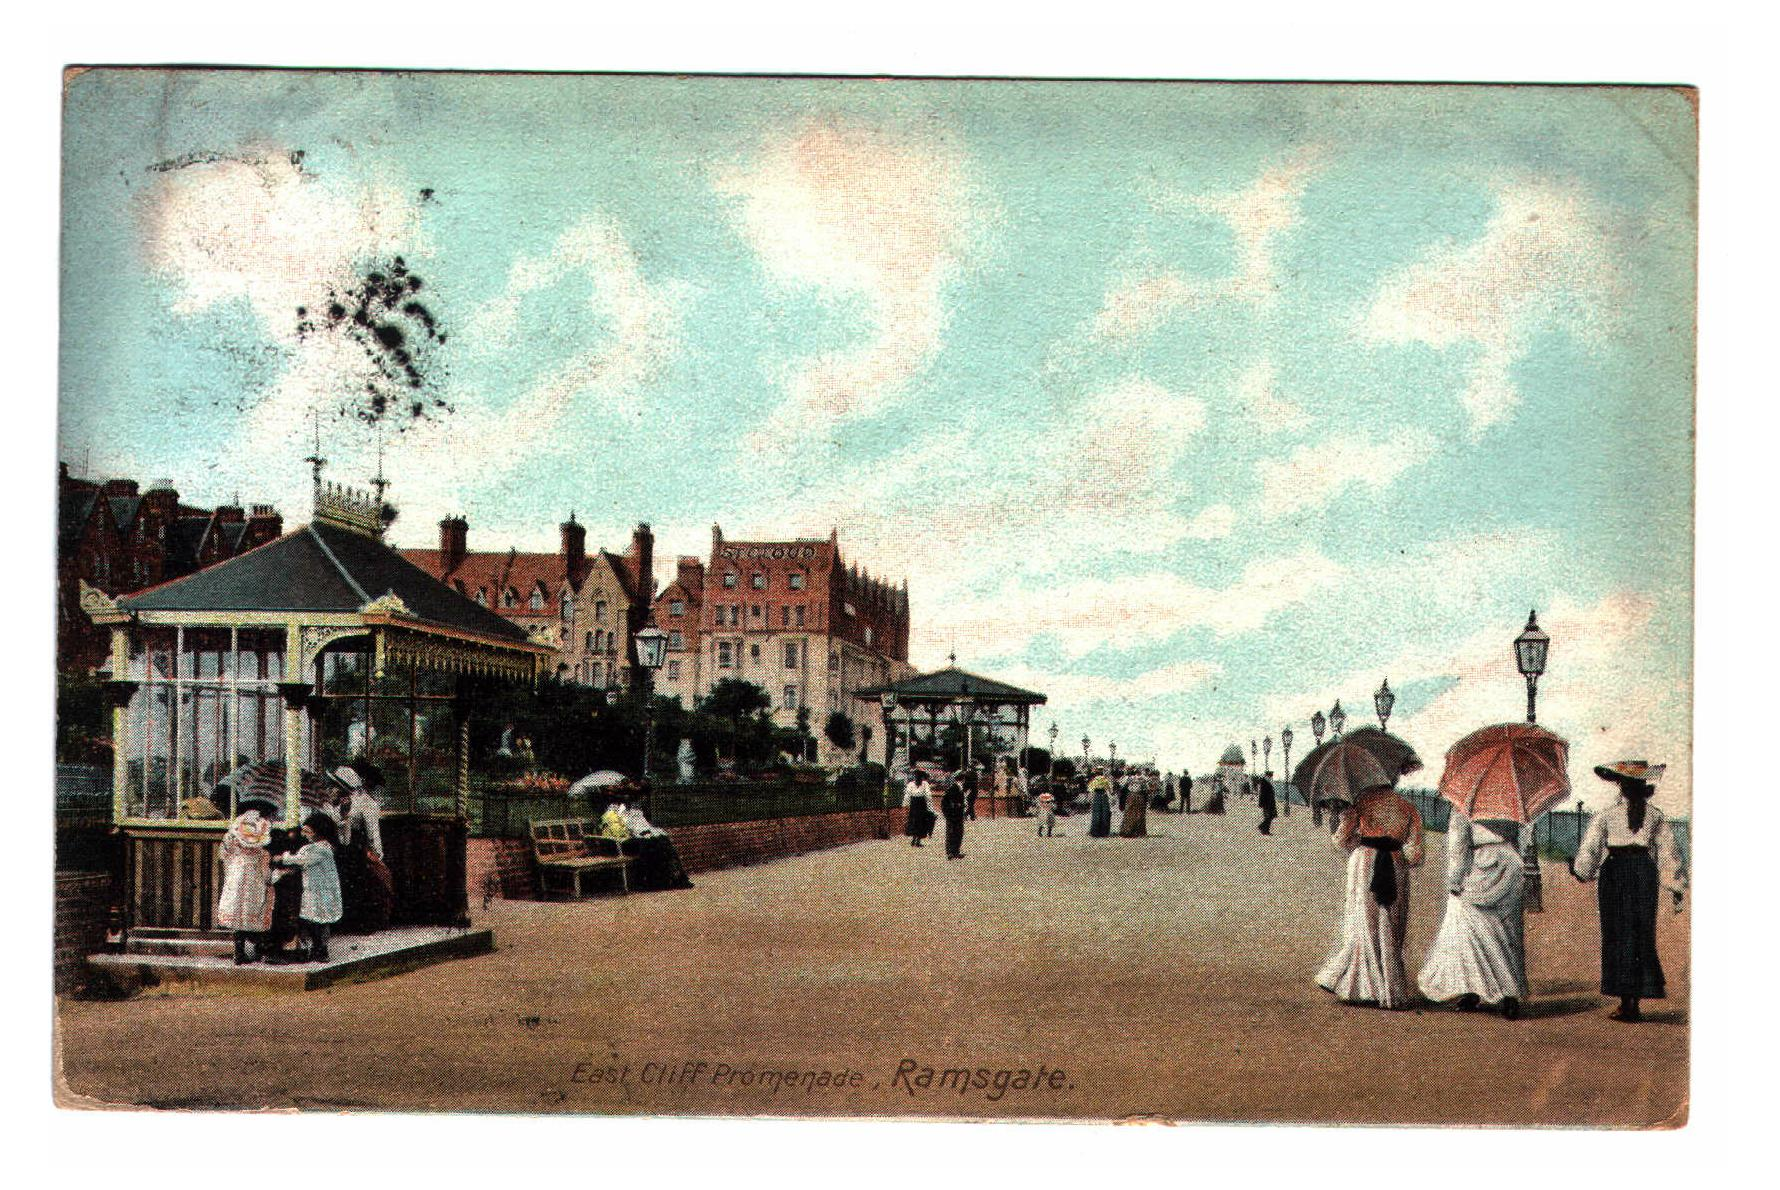 Old Ramsgate - West Cliff